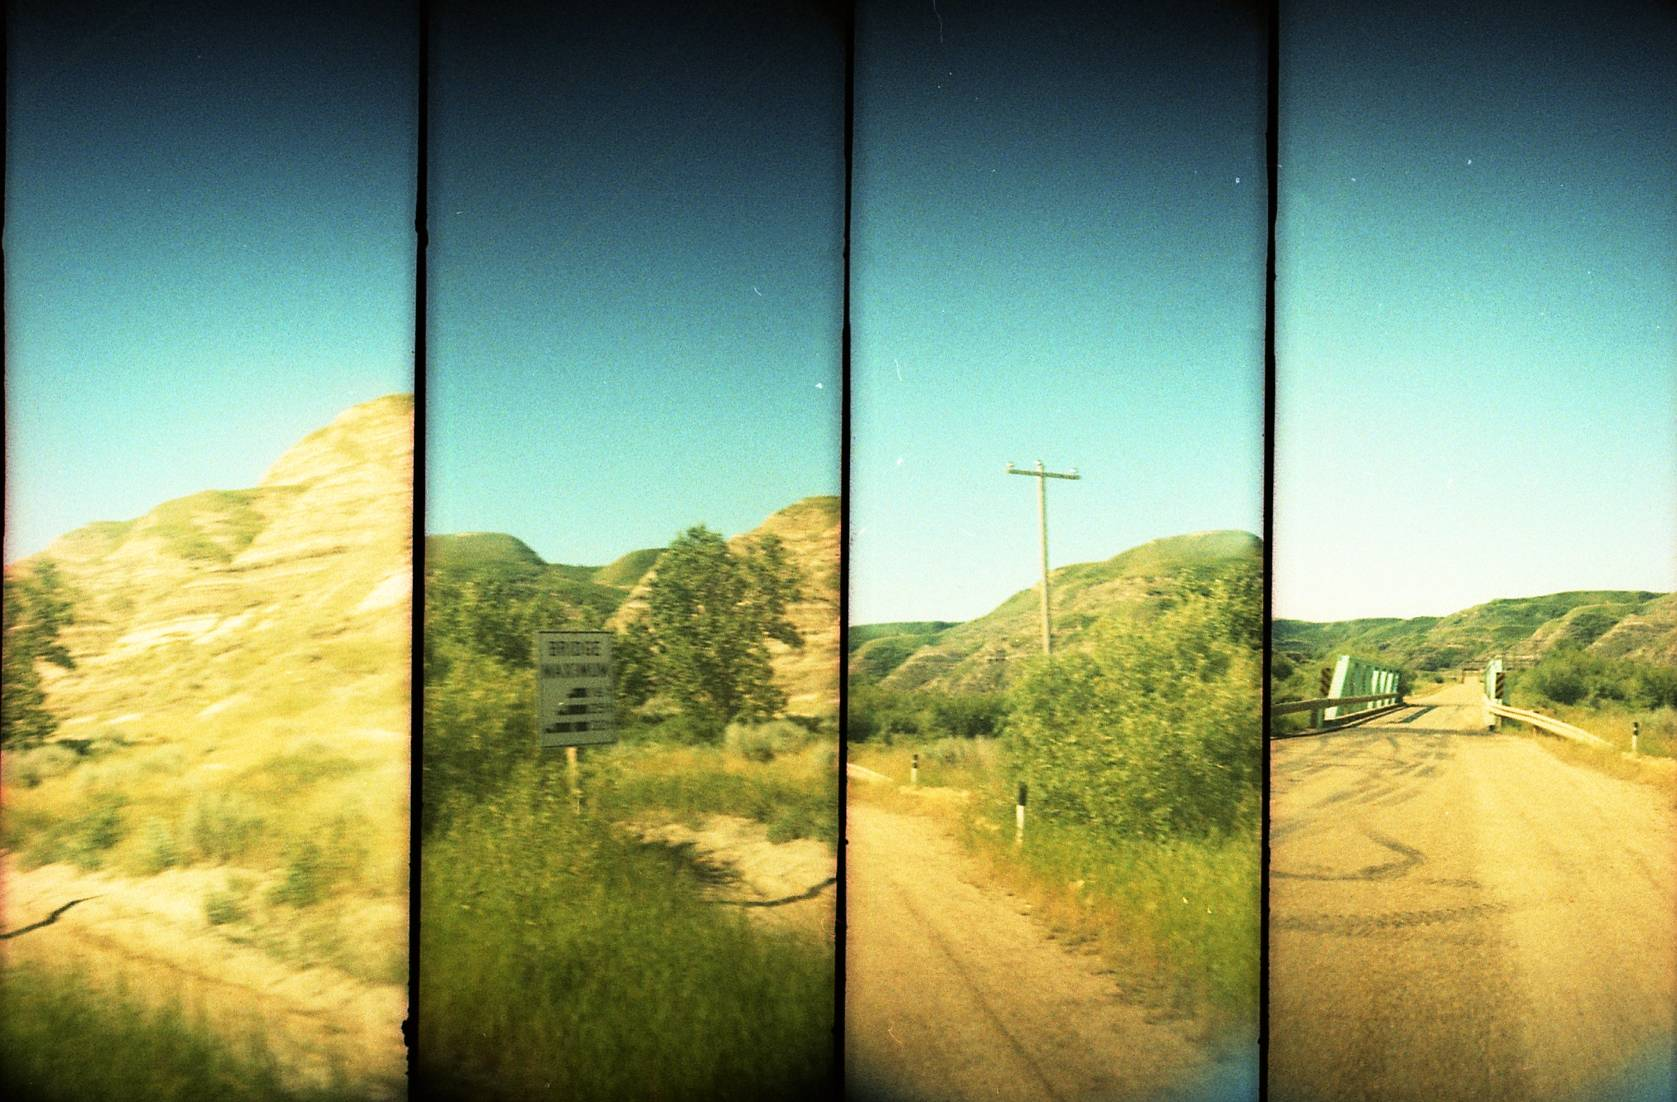 Written By Dirklancer On 2010 10 03 Places Canada Road Trip Bridges Historic Location Supersampler Holga Lc A Travel Destination